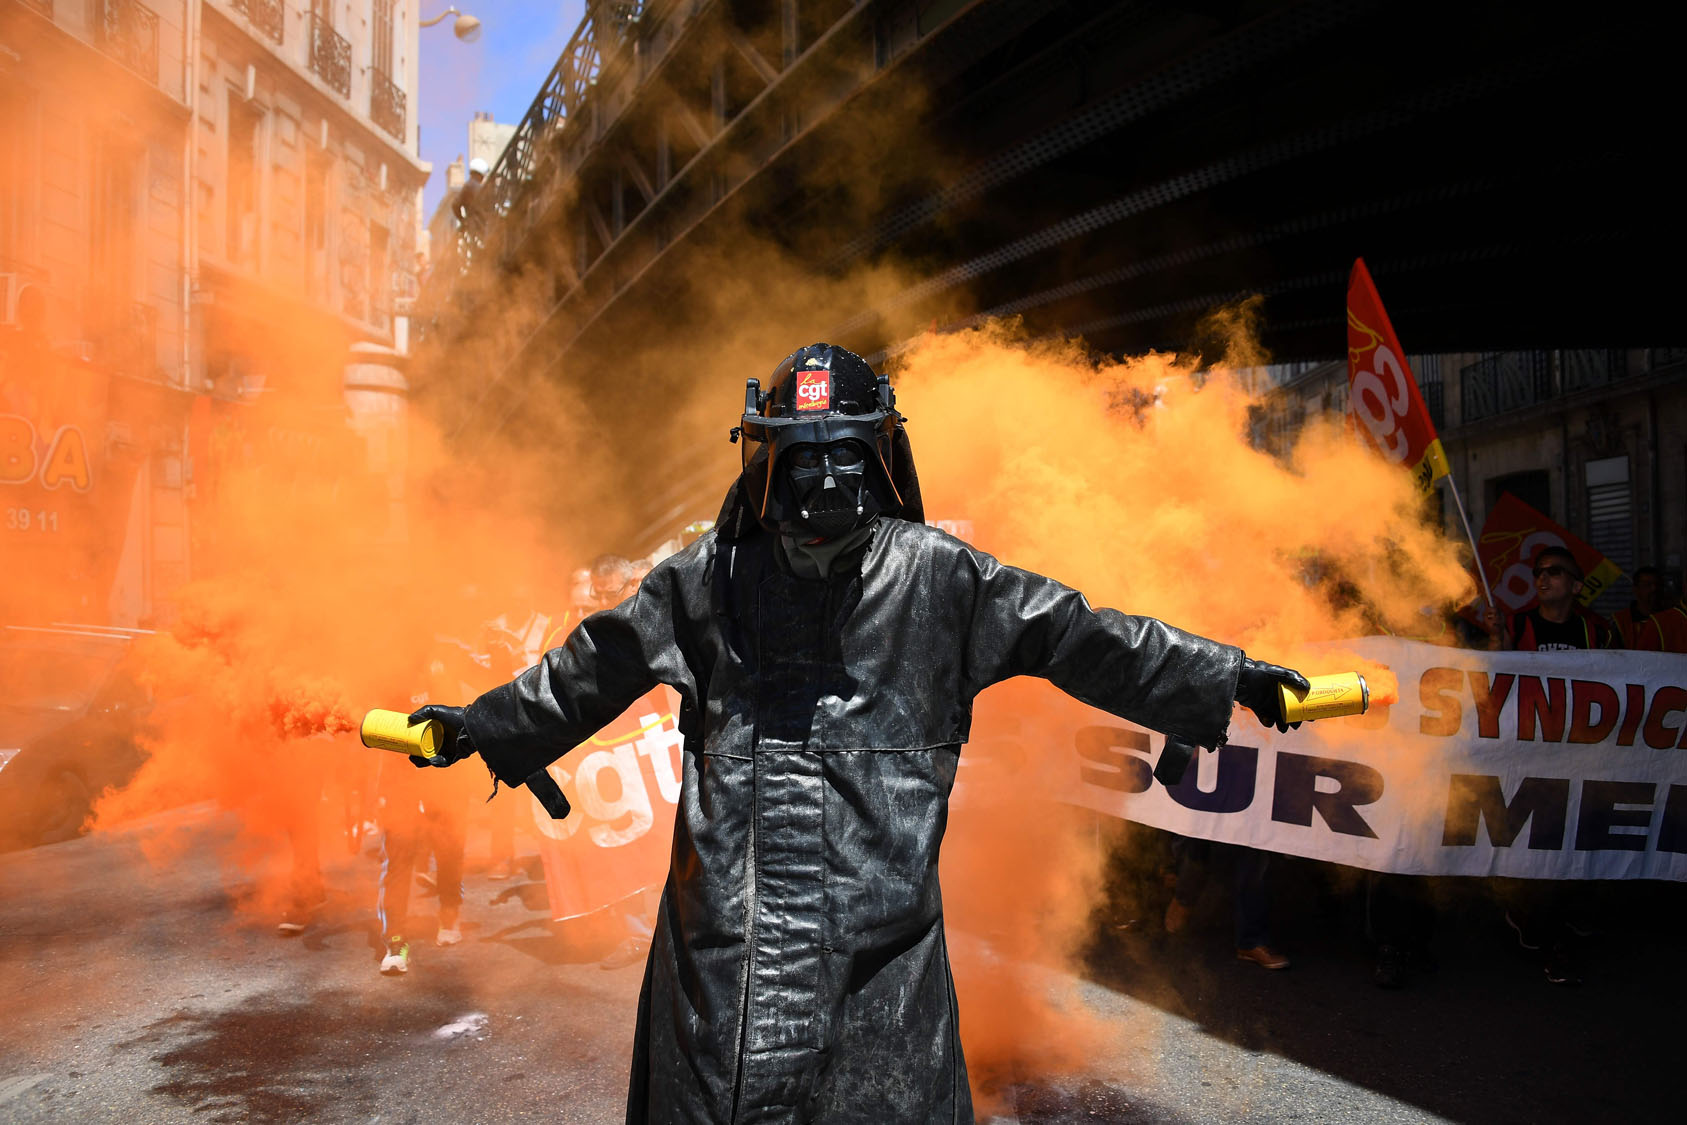 French police clash with protesters over labor reforms